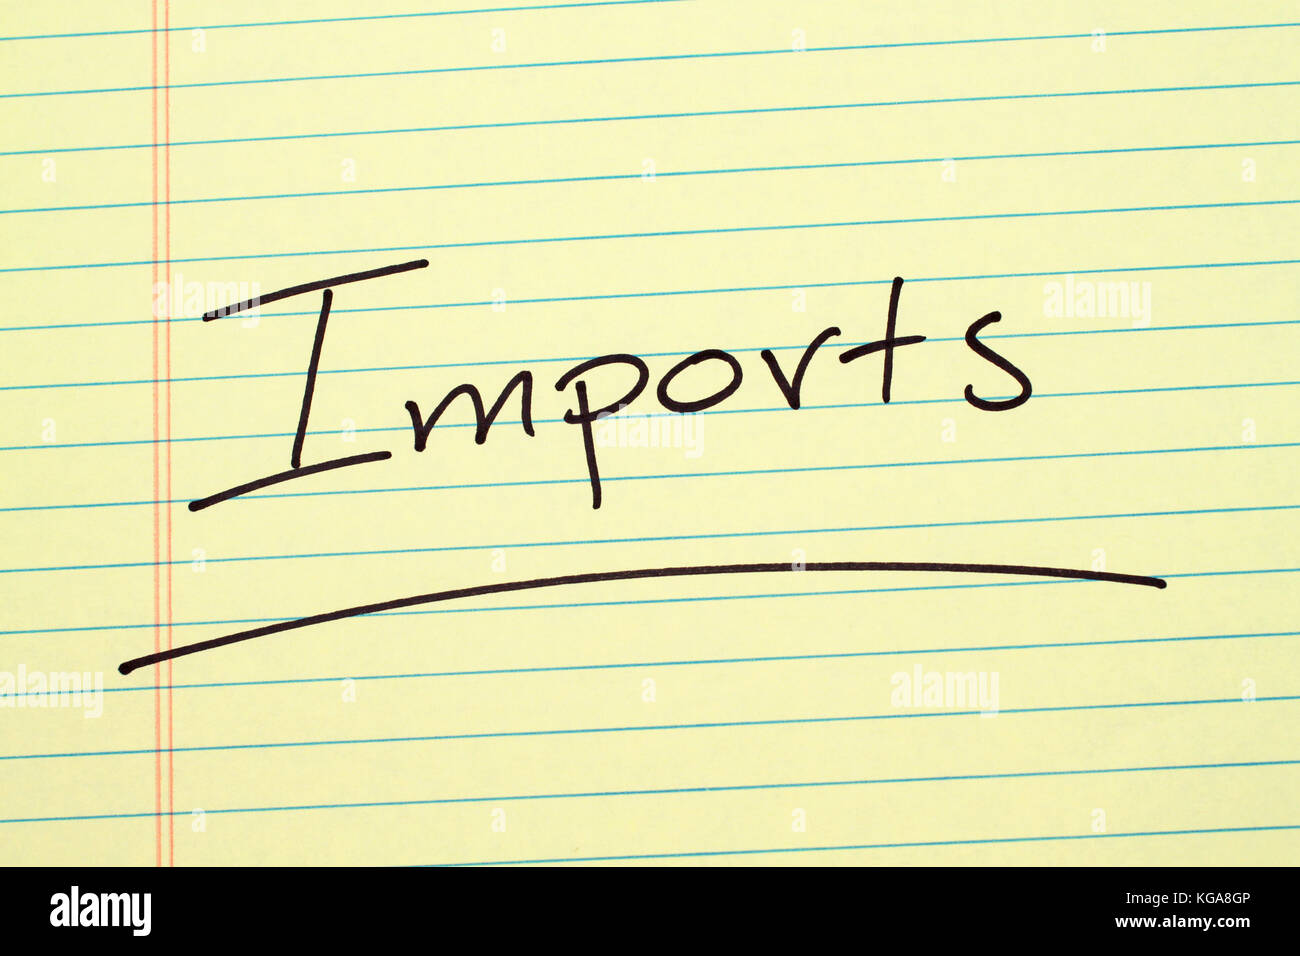 The word 'Imports' underlined on a yellow legal pad - Stock Image